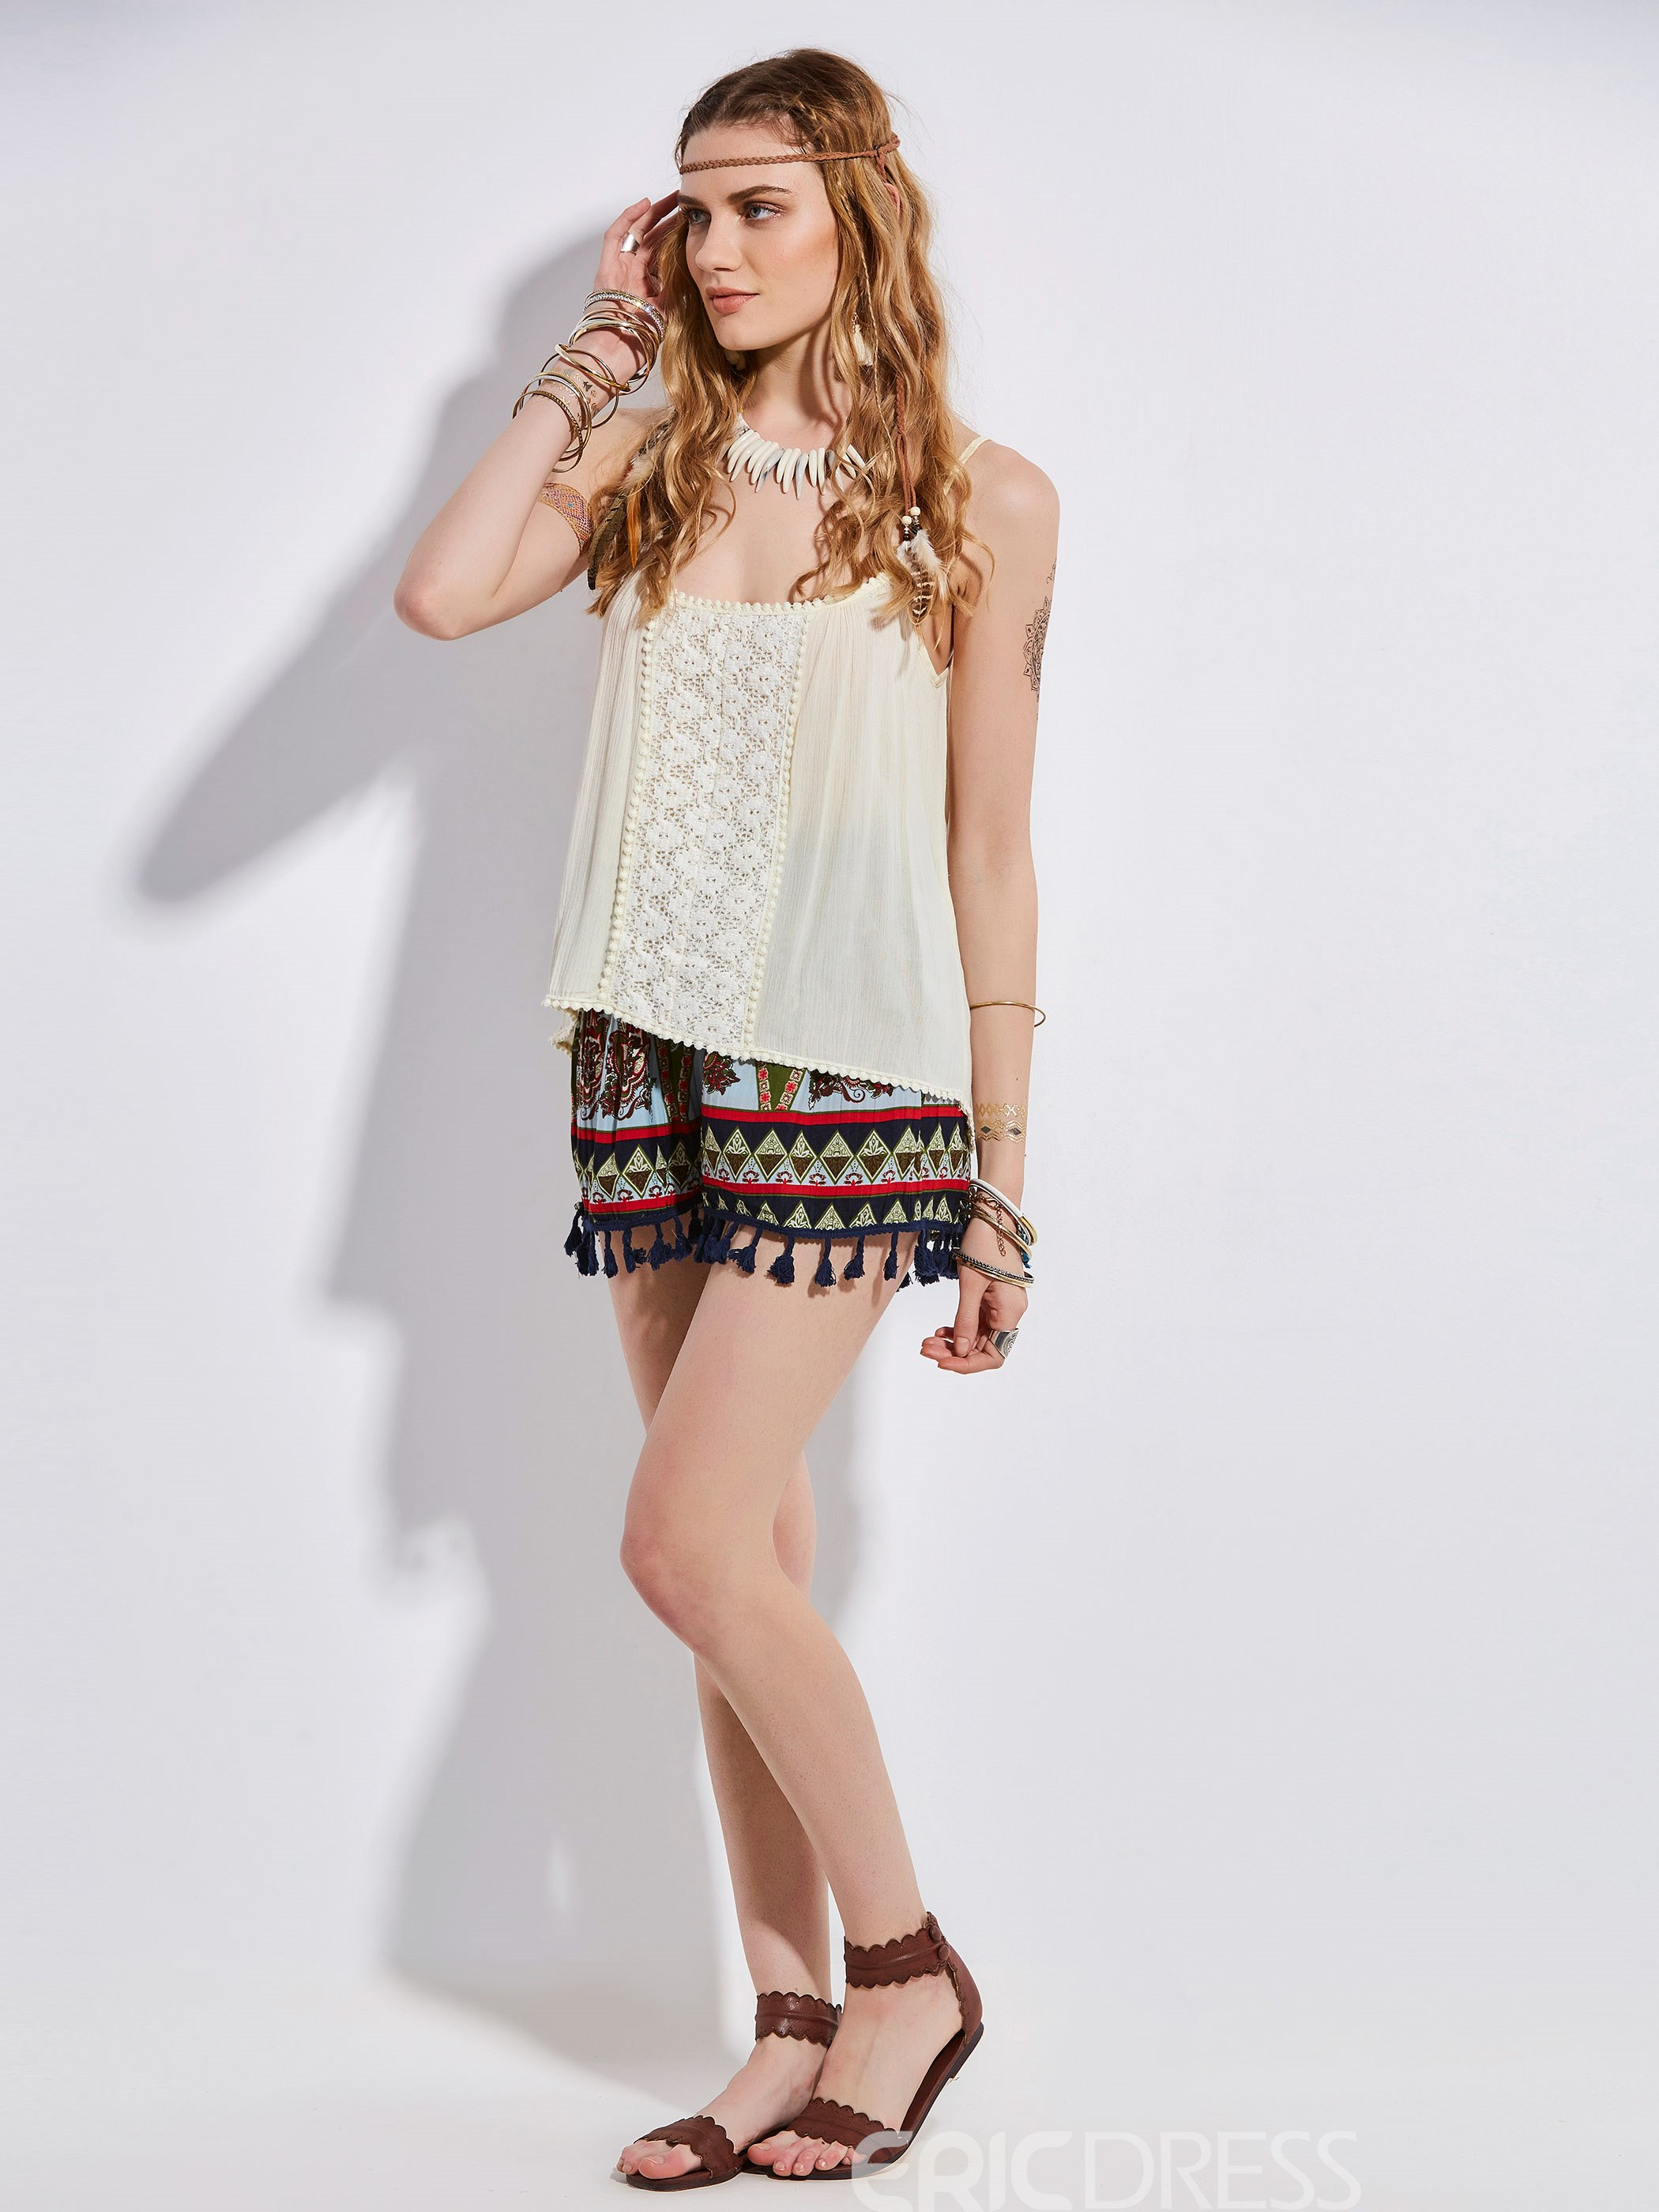 Ericdress Bohoartist Lace Patchwork Tank Top